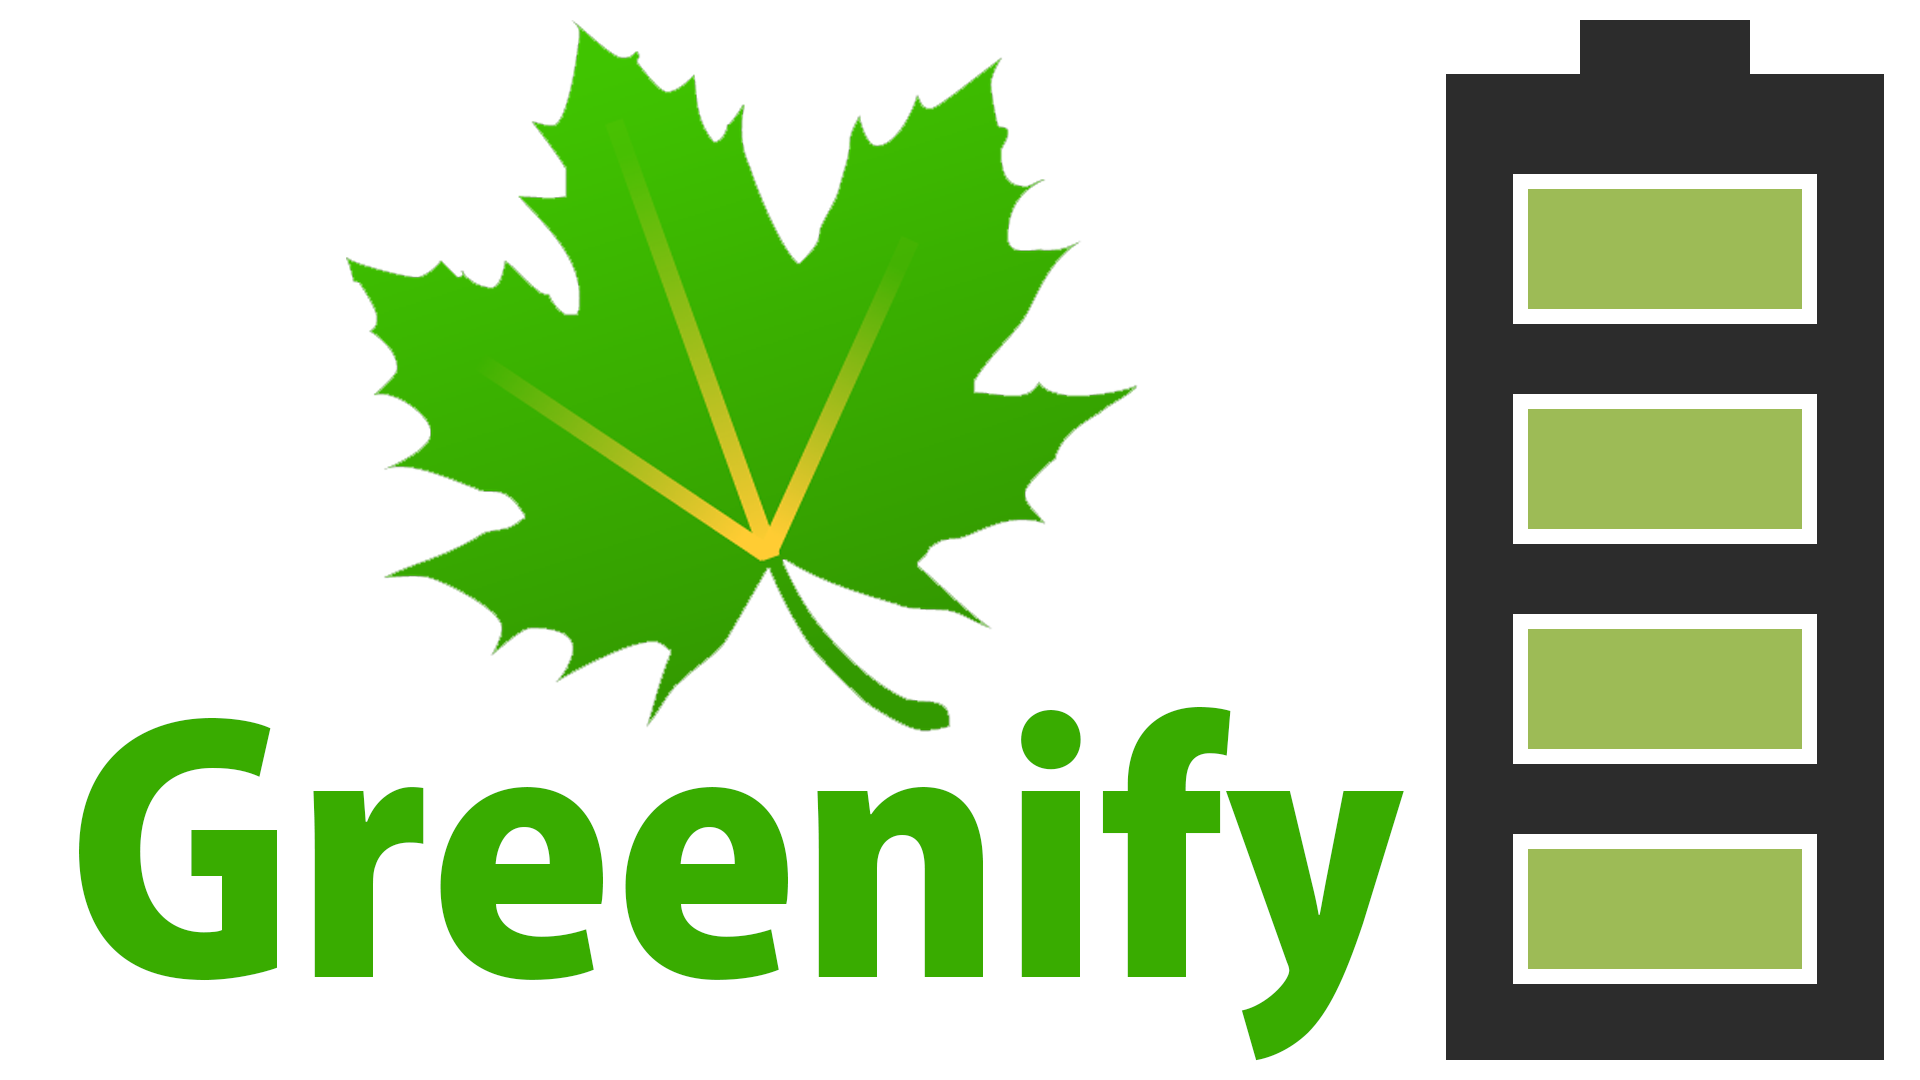 Use Greenify Apk Downloads To Optimize Battery Life In Android Android Battery Android Apps Download App